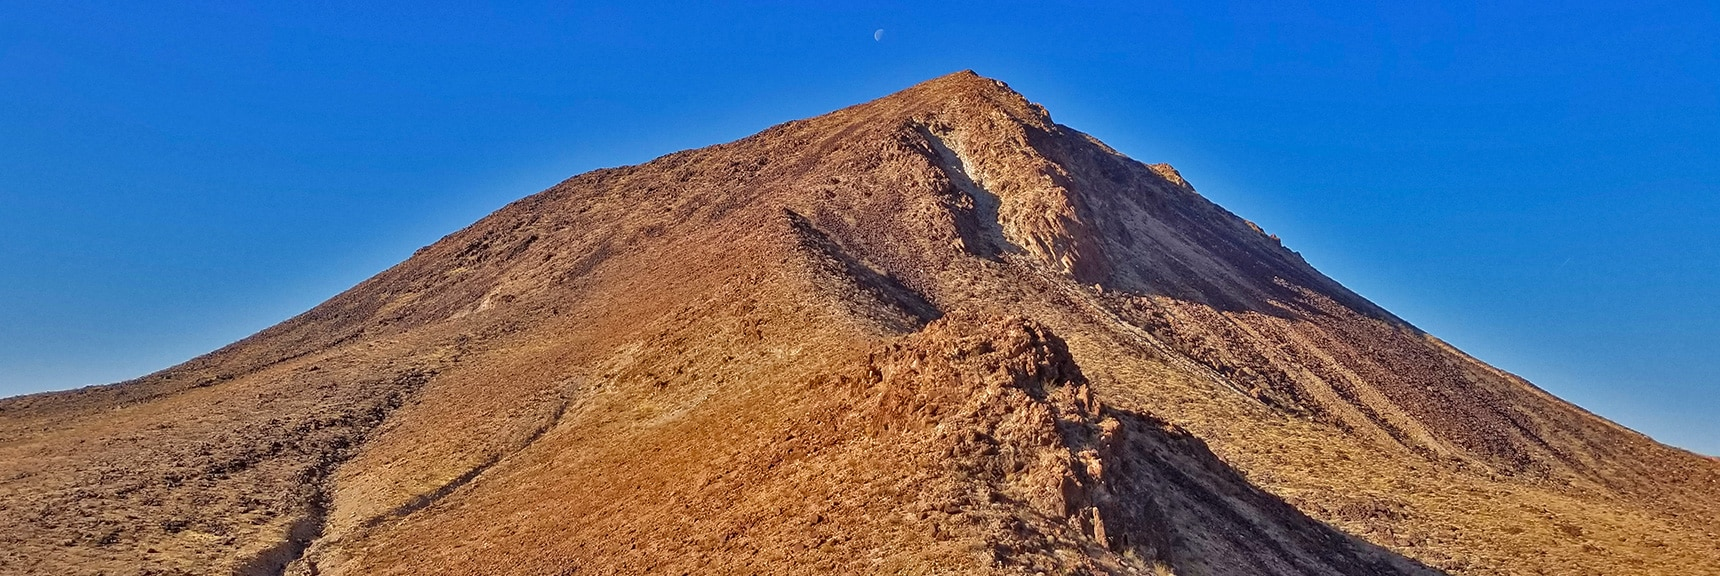 Final Approach on the Northeast Side of Lava Butte. Setting Moon Visible Above. | Lava Butte | Lake Mead National Recreation Area, Nevada